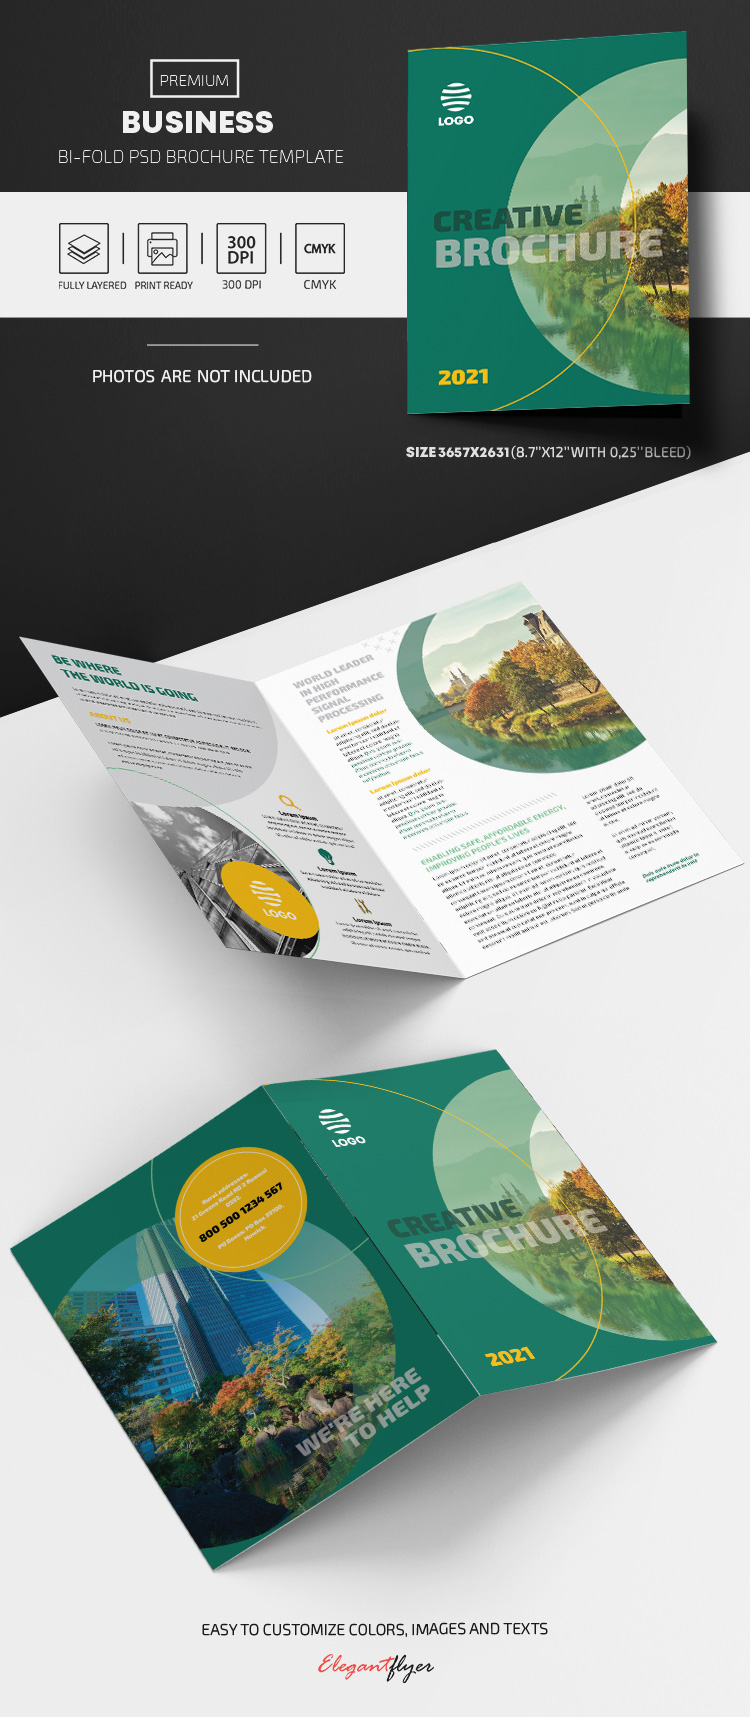 Business – Bi-Fold Brochure PSD Template